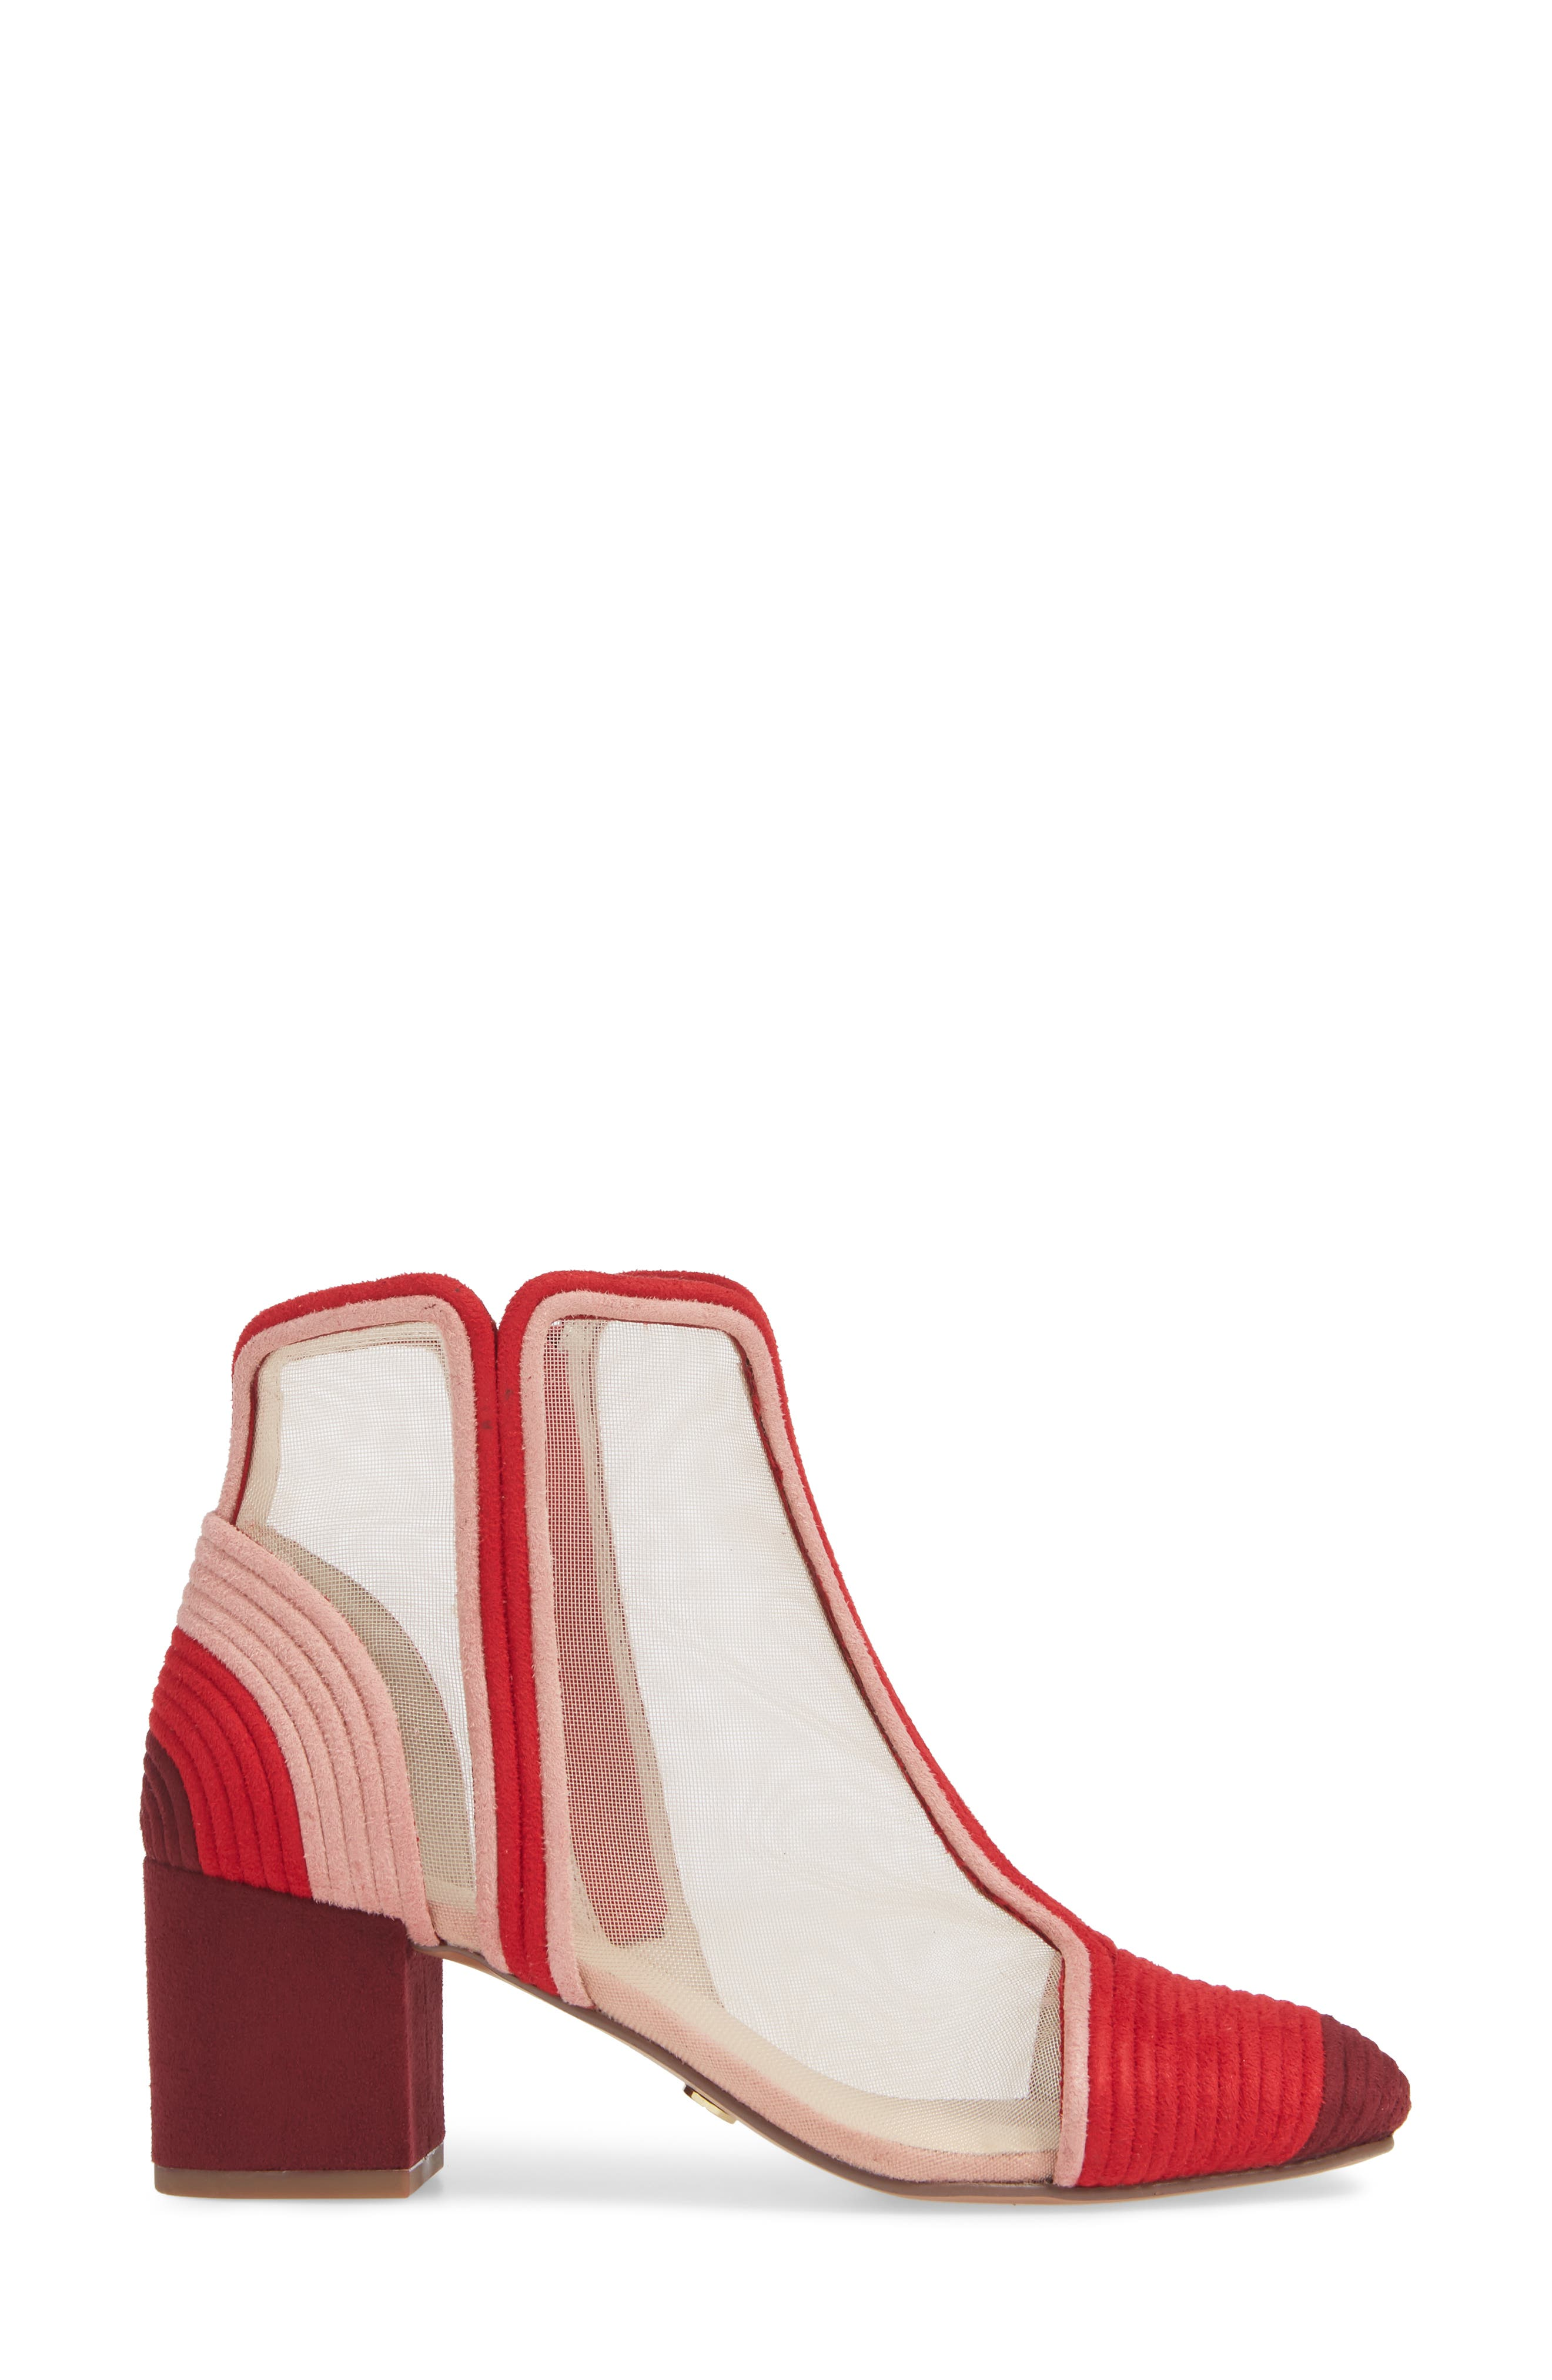 CECELIA NEW YORK,                             Neely Bootie,                             Alternate thumbnail 3, color,                             PINOT SUEDE